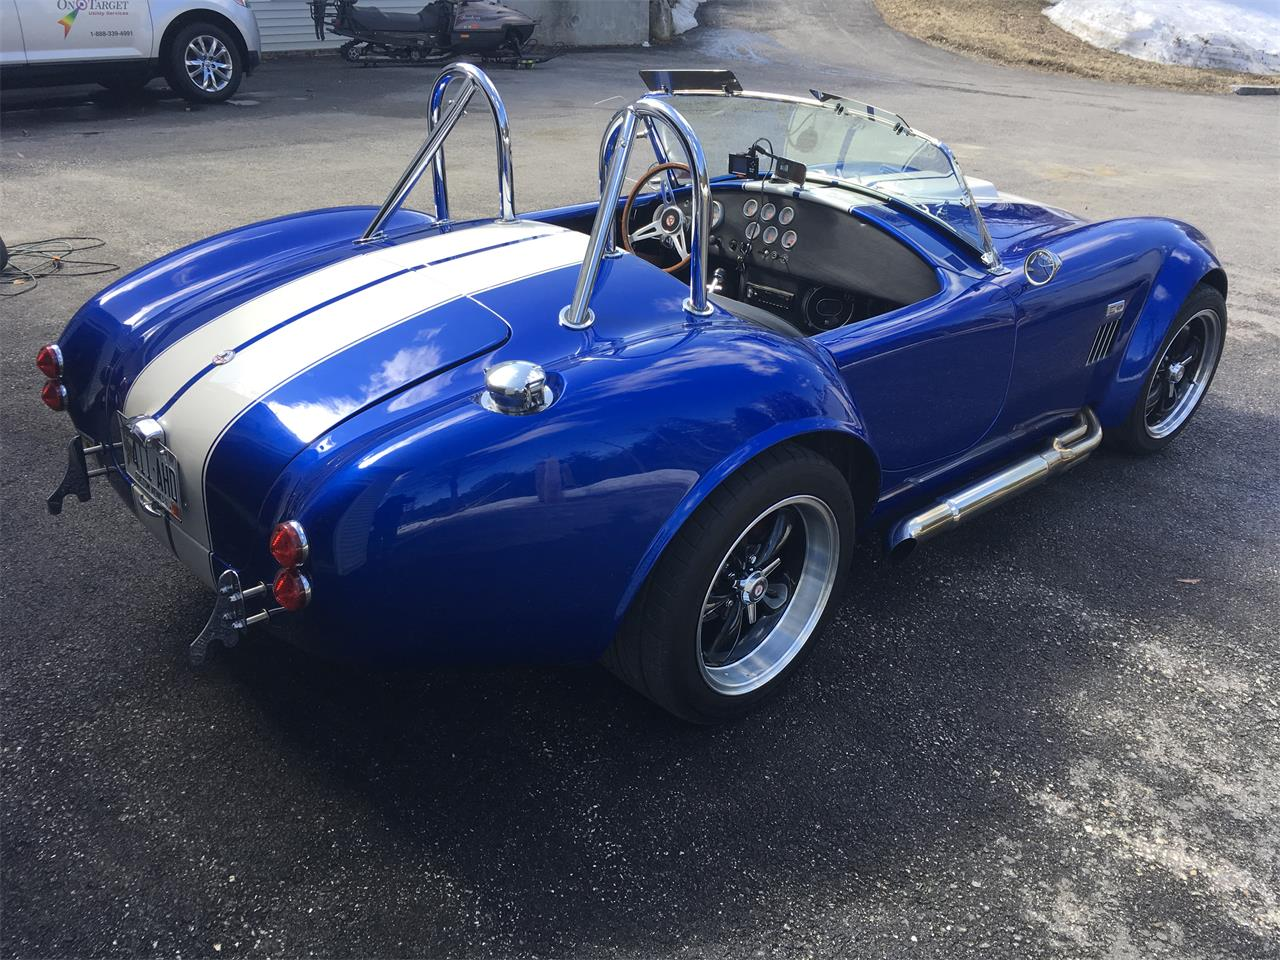 Large Picture of '66 Cobra Replica located in Skowhegan  Maine Offered by a Private Seller - Q2QB